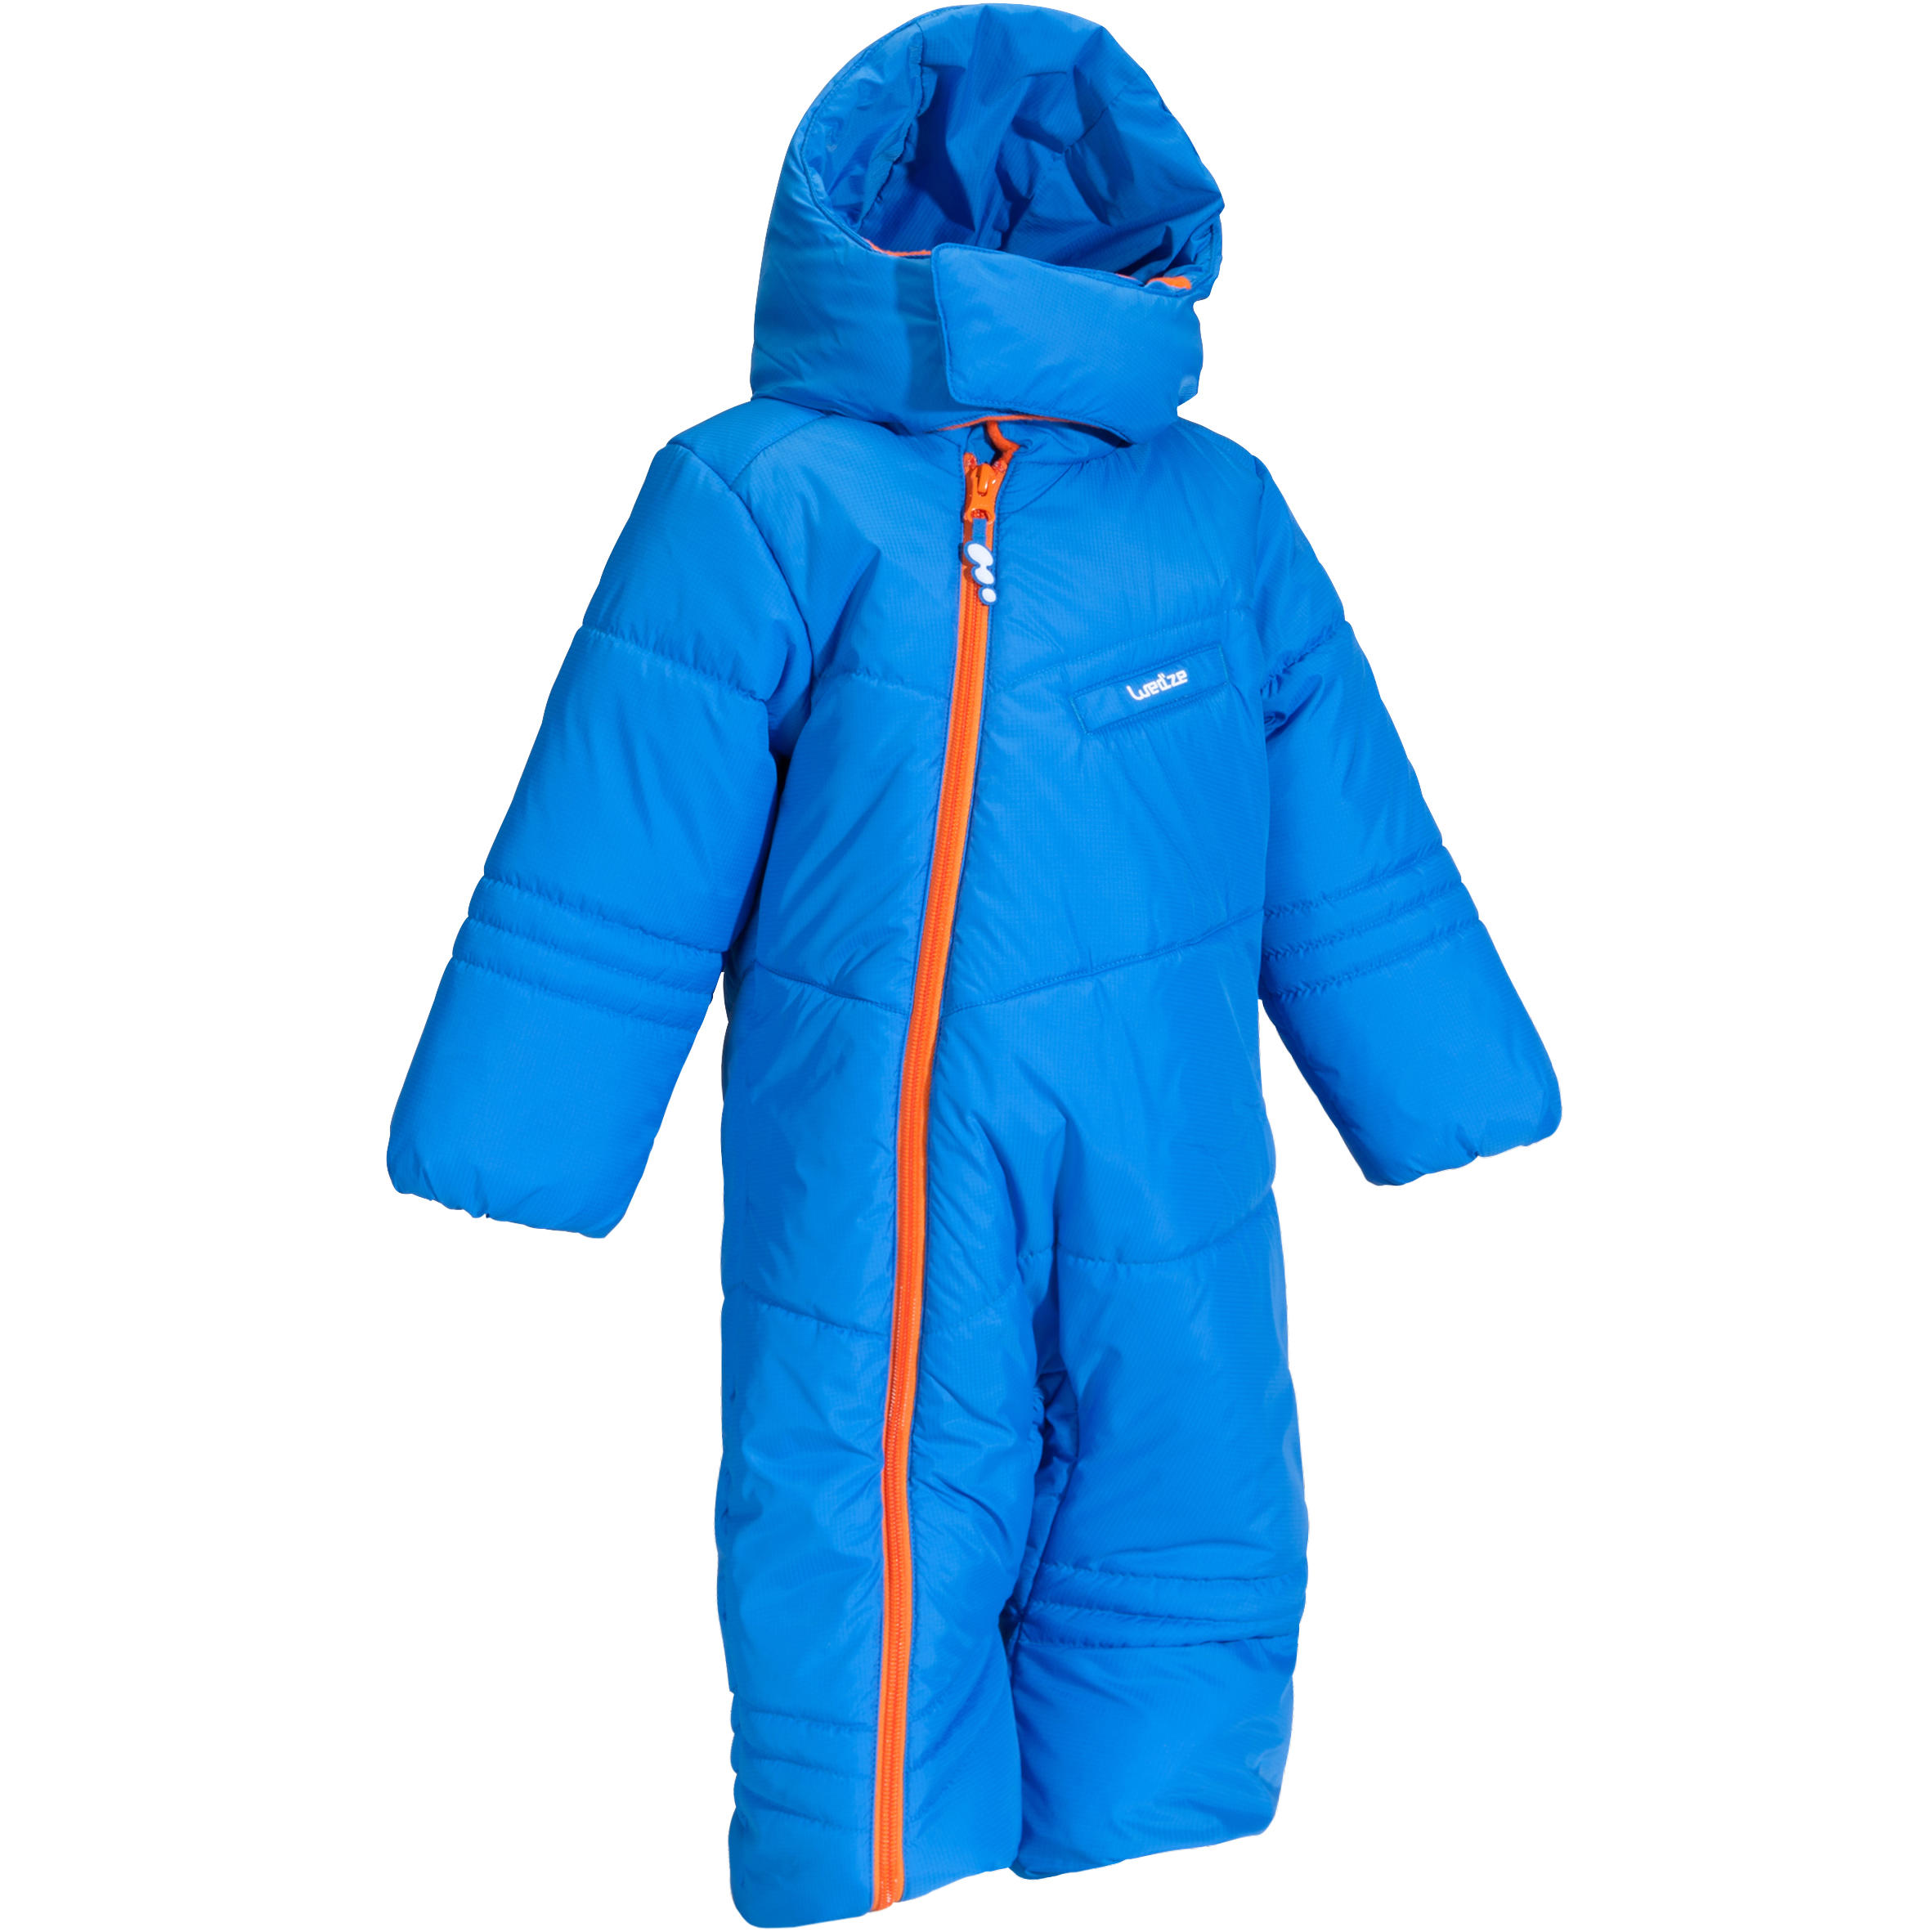 SKIPAK BABY FIRSTHEAT BLAUW